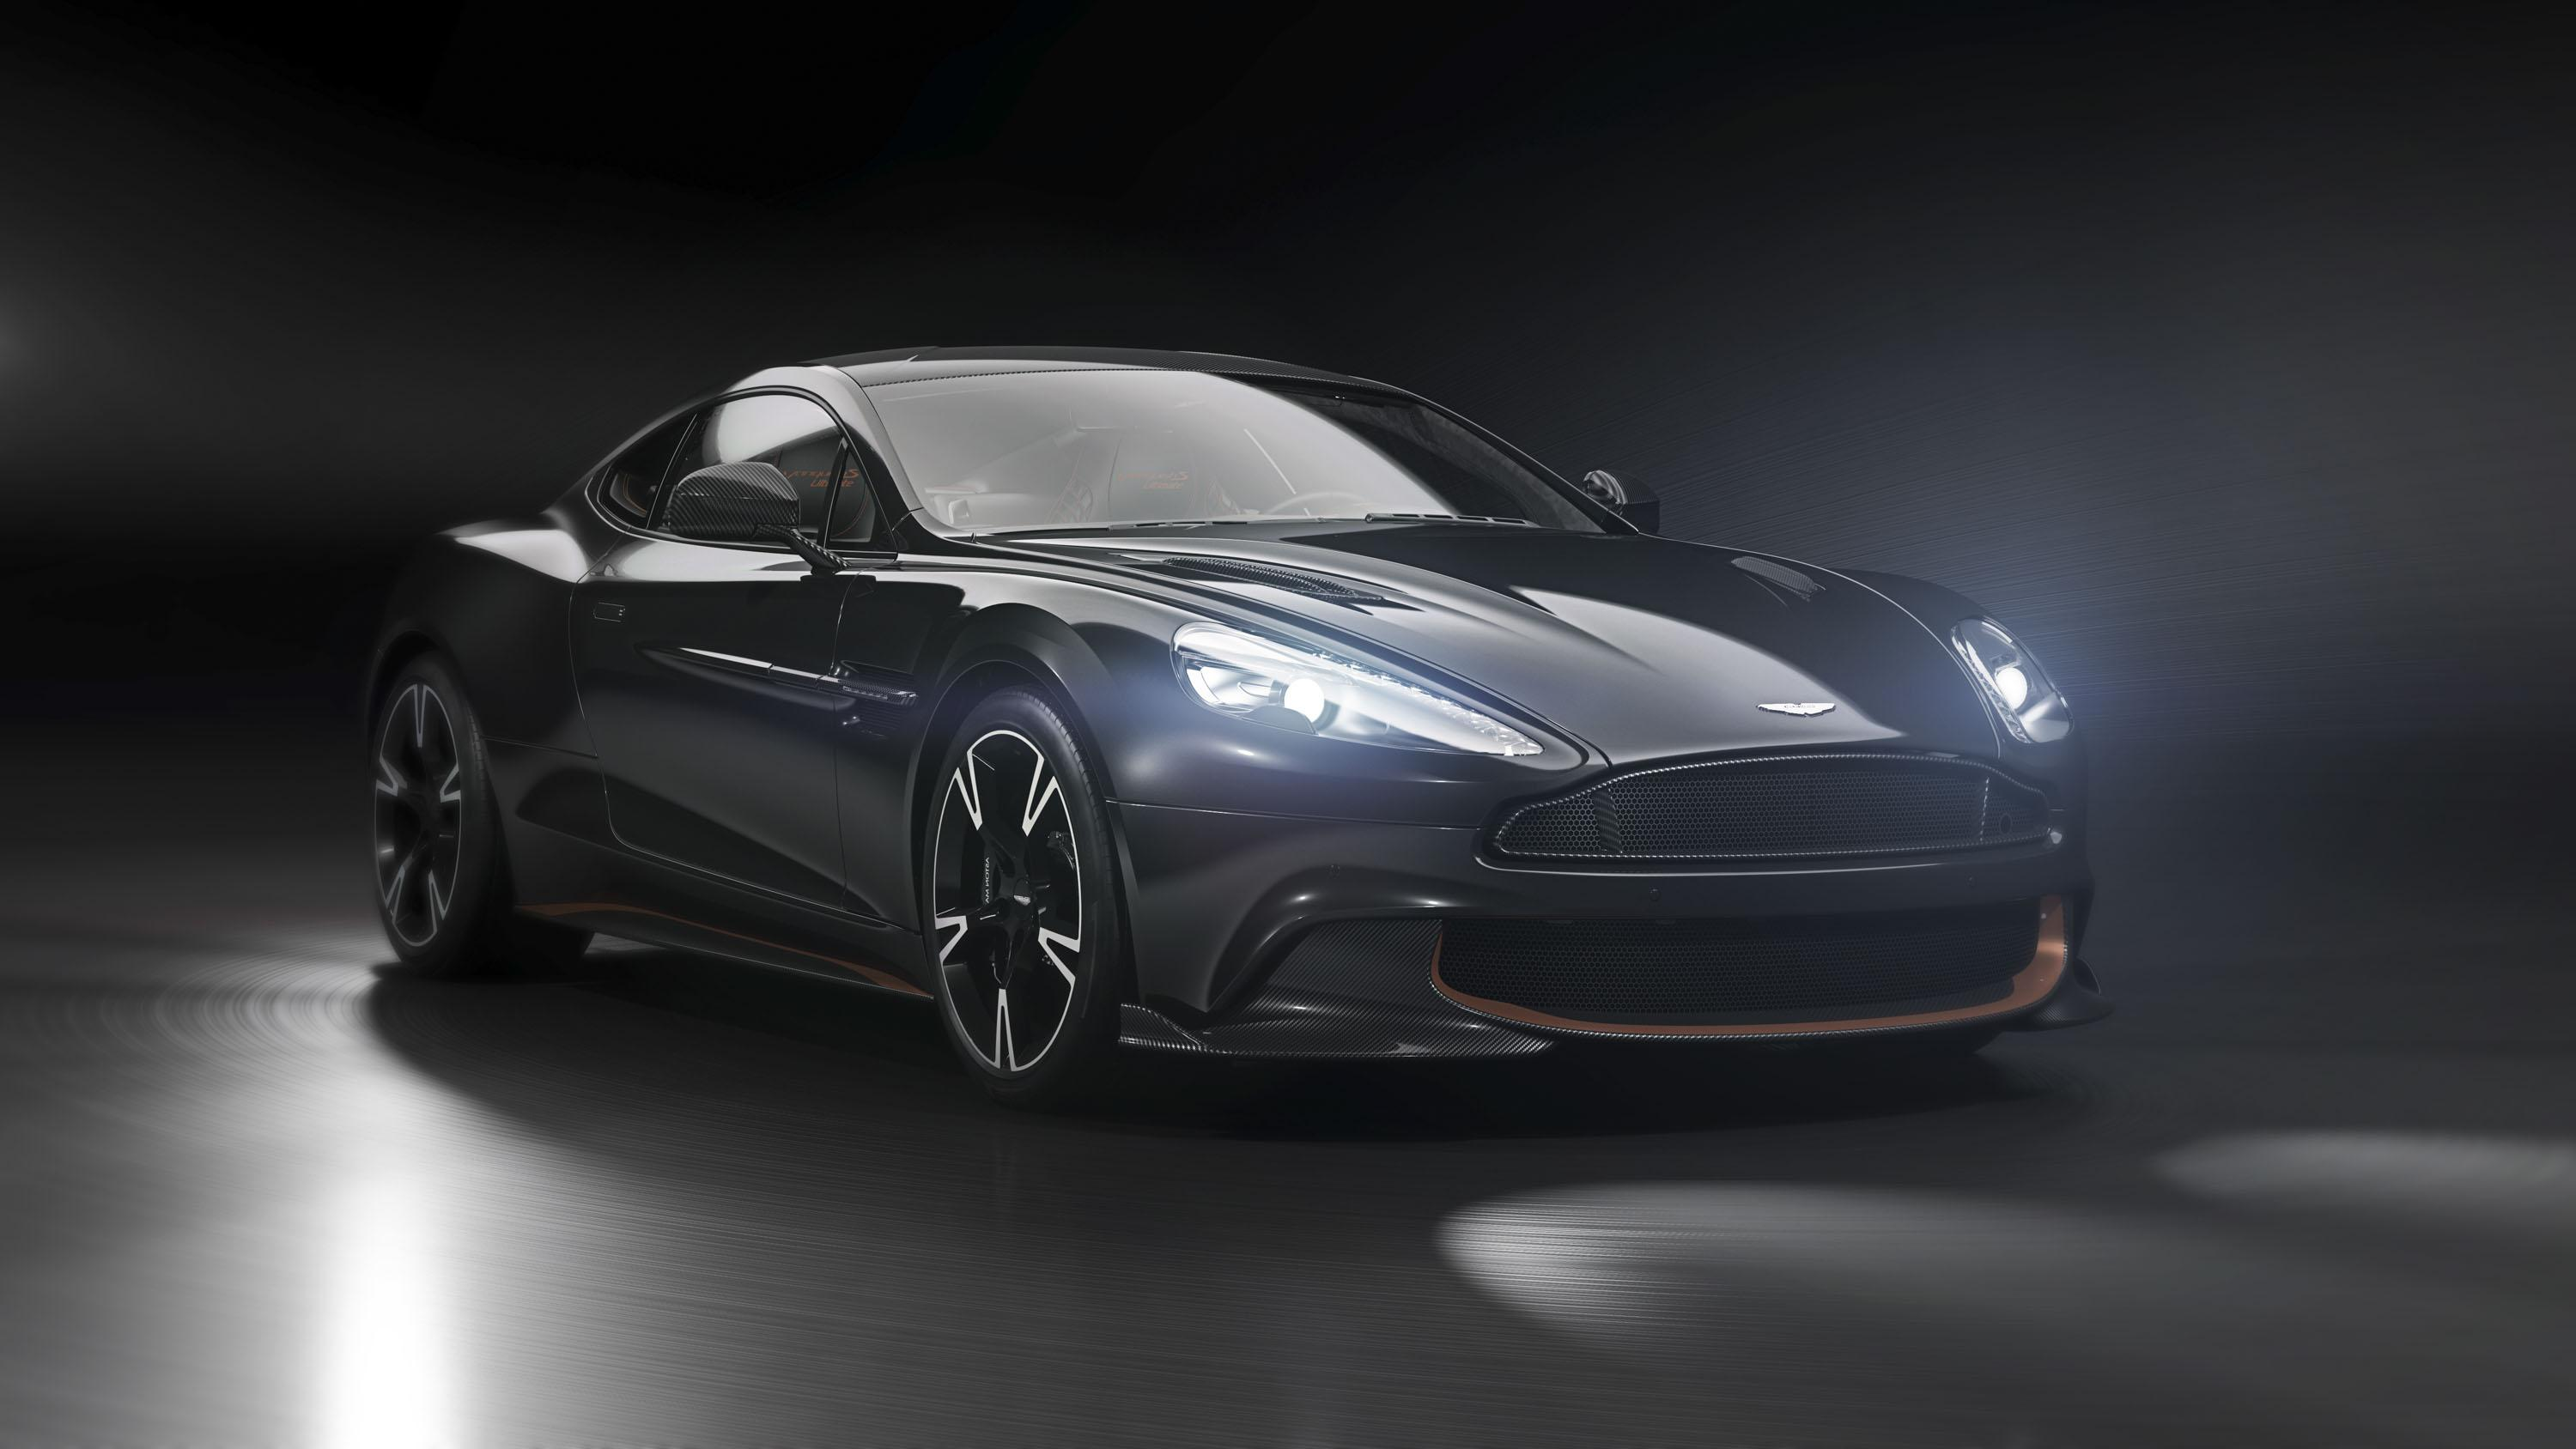 2018 Aston Martin Vanquish S Ultimate Pictures, Photos, Wallpapers ...